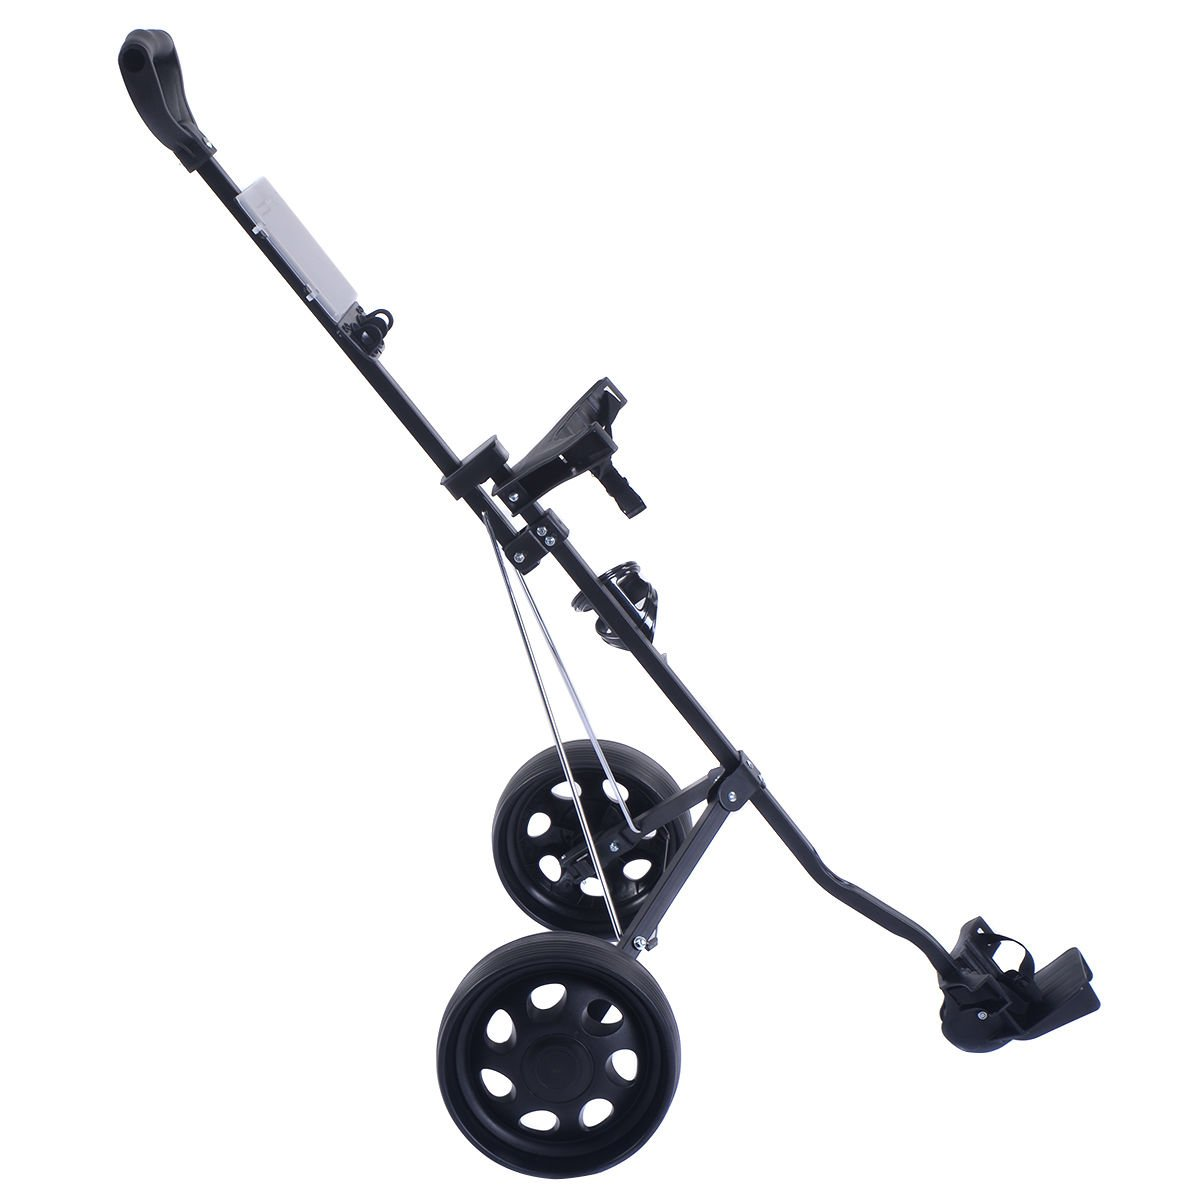 COLIBROX--New Foldable 2 Wheel Push Pull Golf Cart /Cup Holder Trolley Swivel Steel Light. pull carts walmart. costway golf cart. best golf pull carts for sale. golf pull carts amazon. by COLIBROX (Image #3)